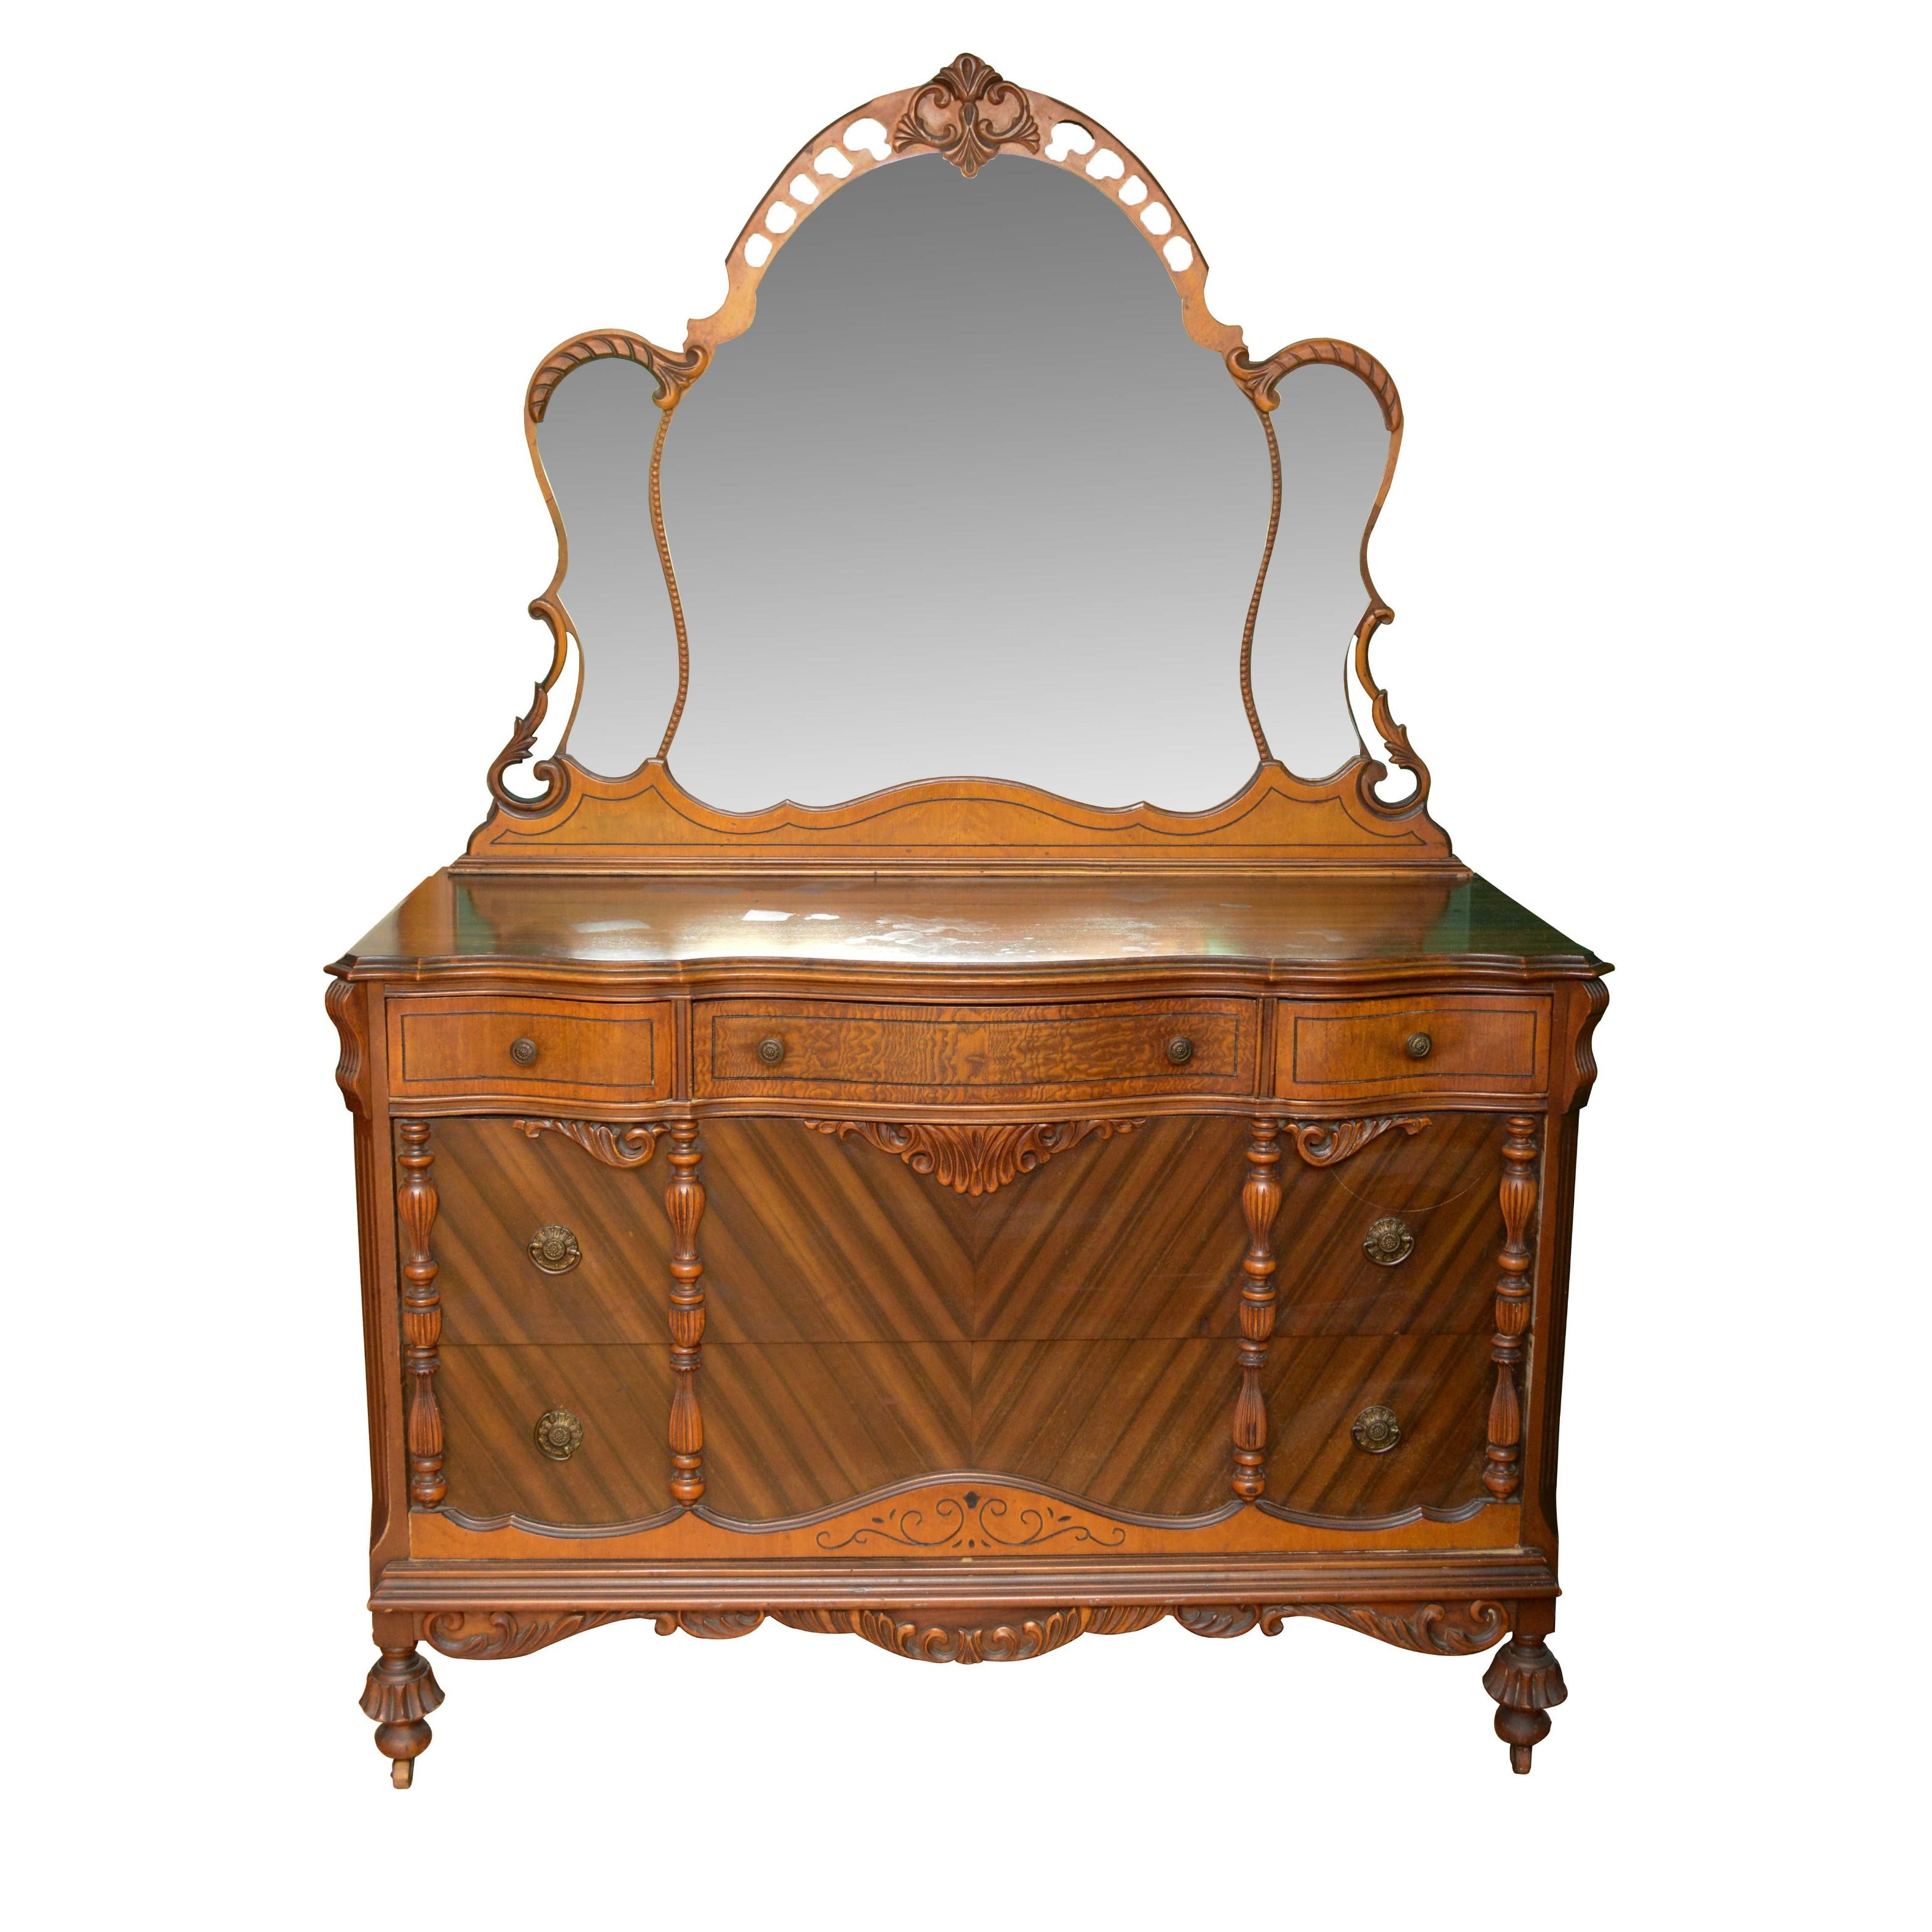 Jacobean Revival Style Dresser with Mirror, Early 20th Century